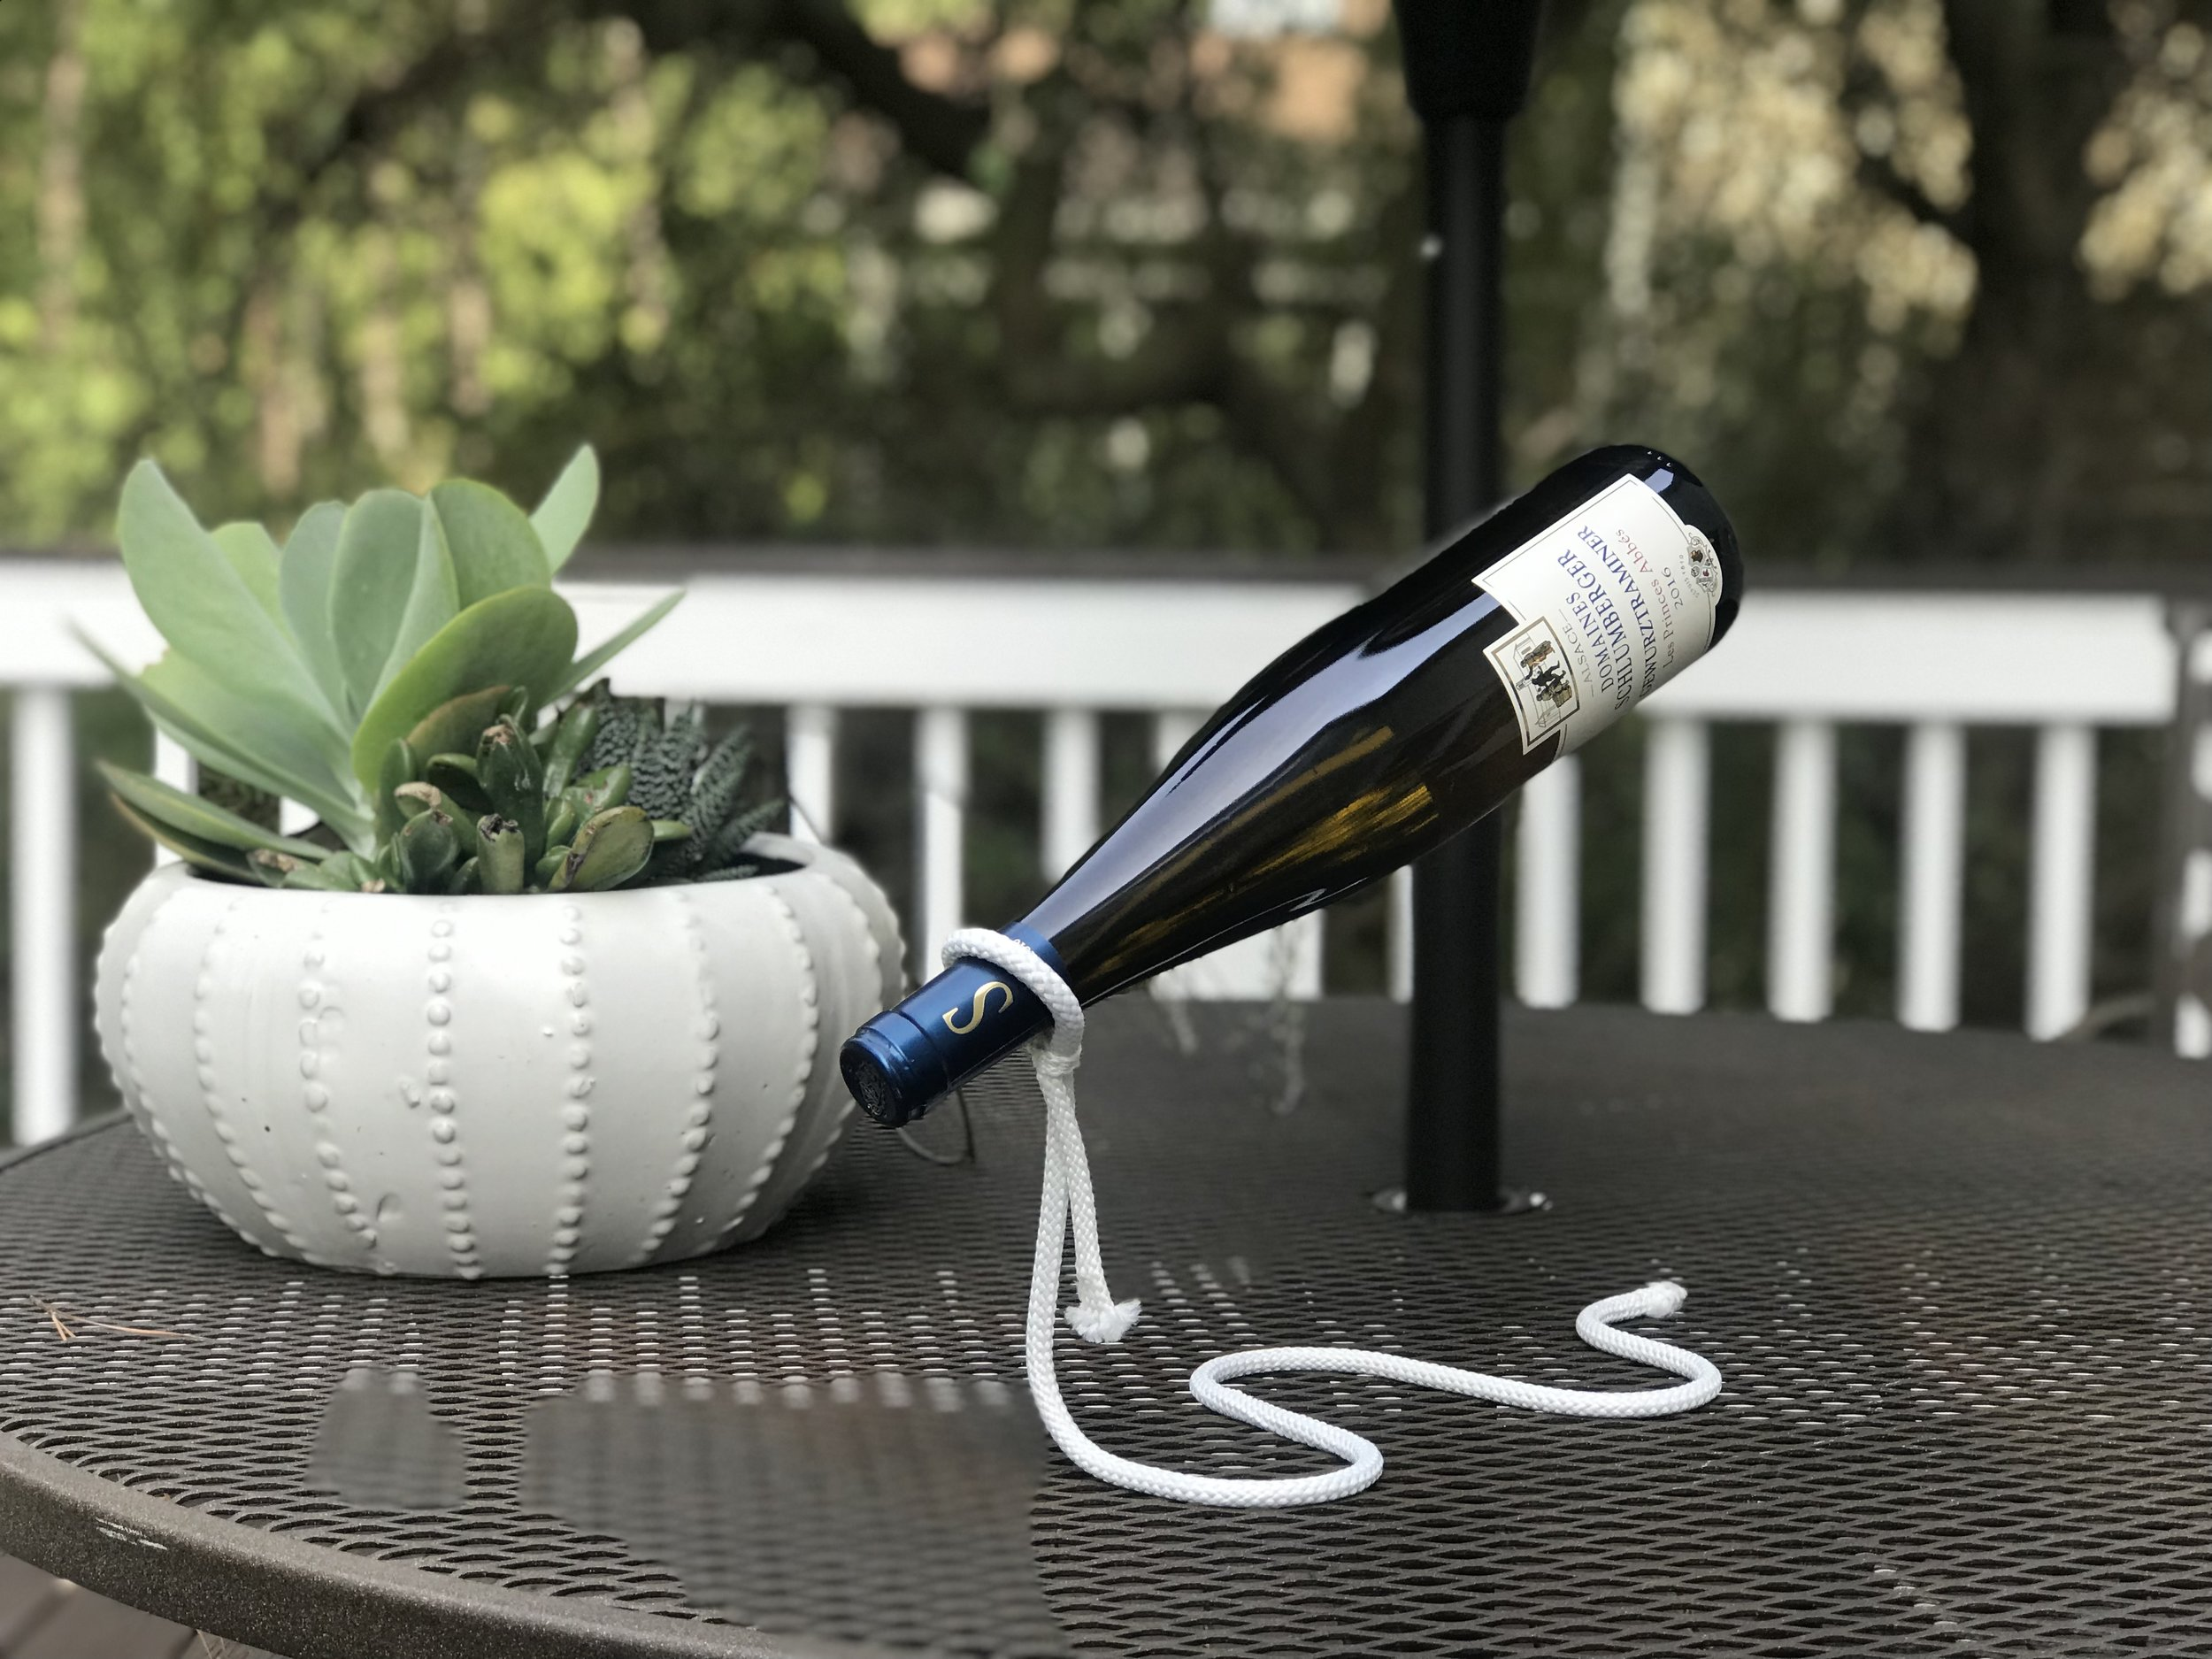 Floating Wine Bottle Holder Lasso.jpeg